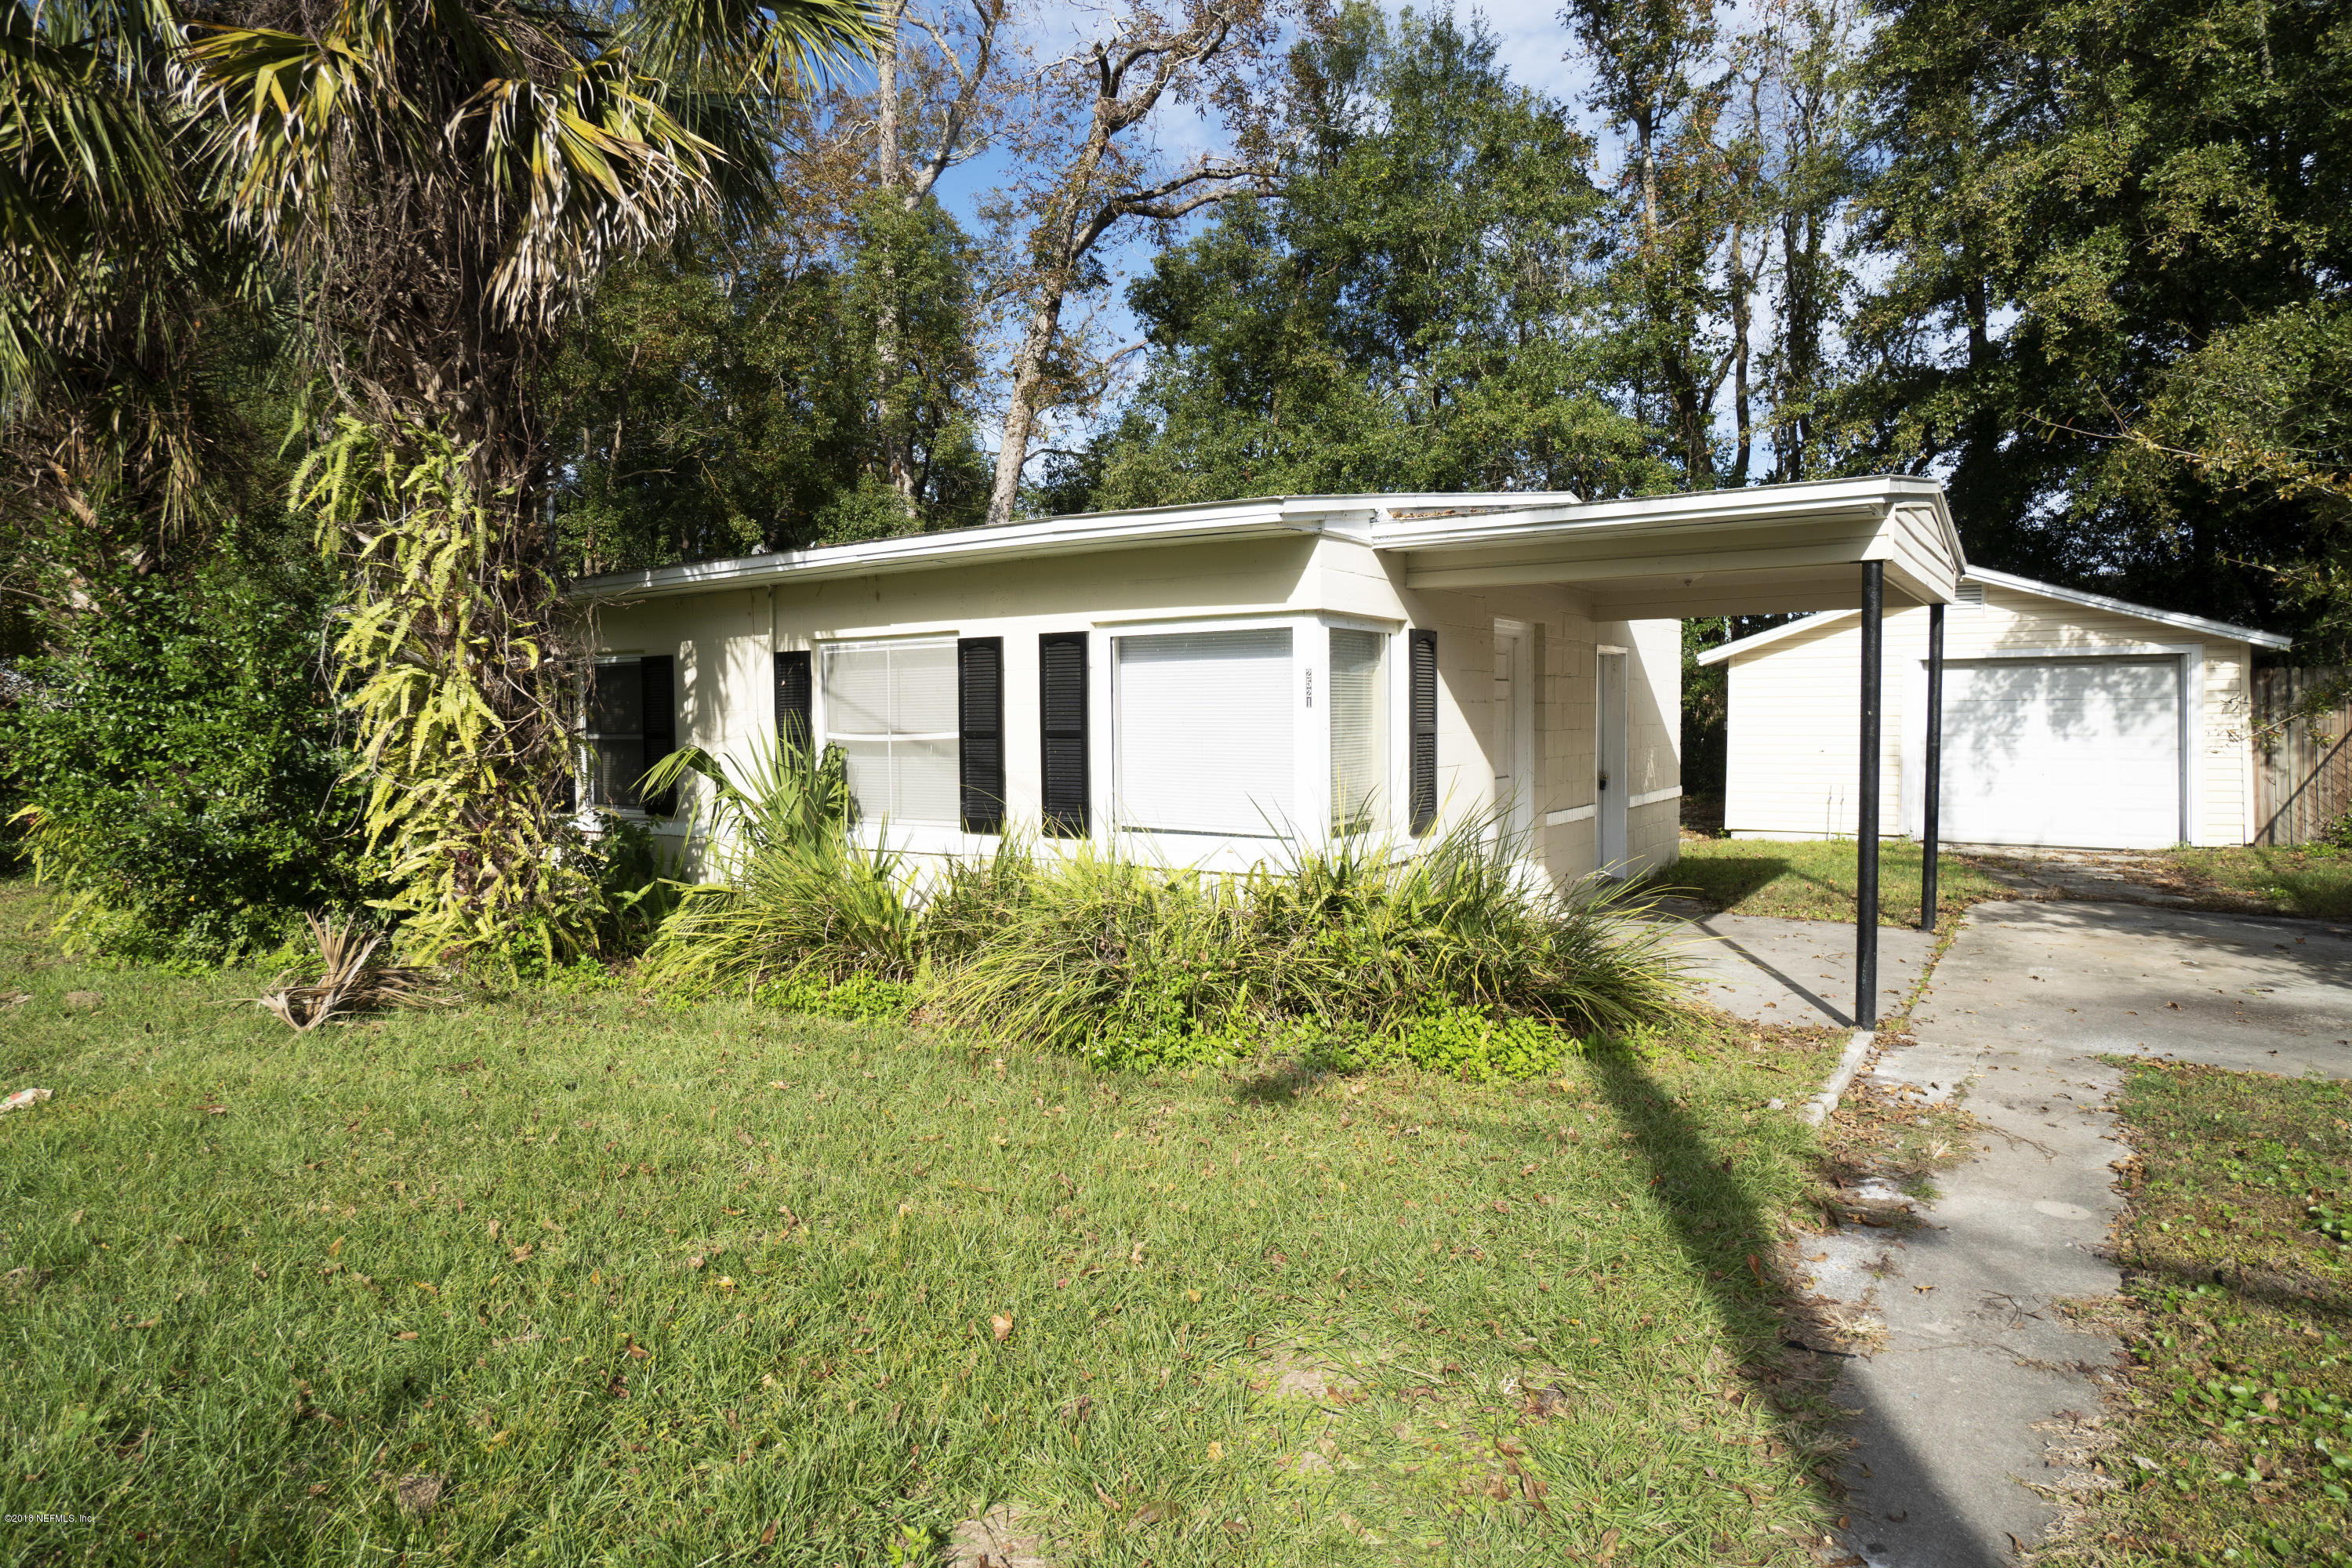 2521 BEAVERBROOK, JACKSONVILLE, FLORIDA 32254, 3 Bedrooms Bedrooms, ,1 BathroomBathrooms,Residential - single family,For sale,BEAVERBROOK,970068